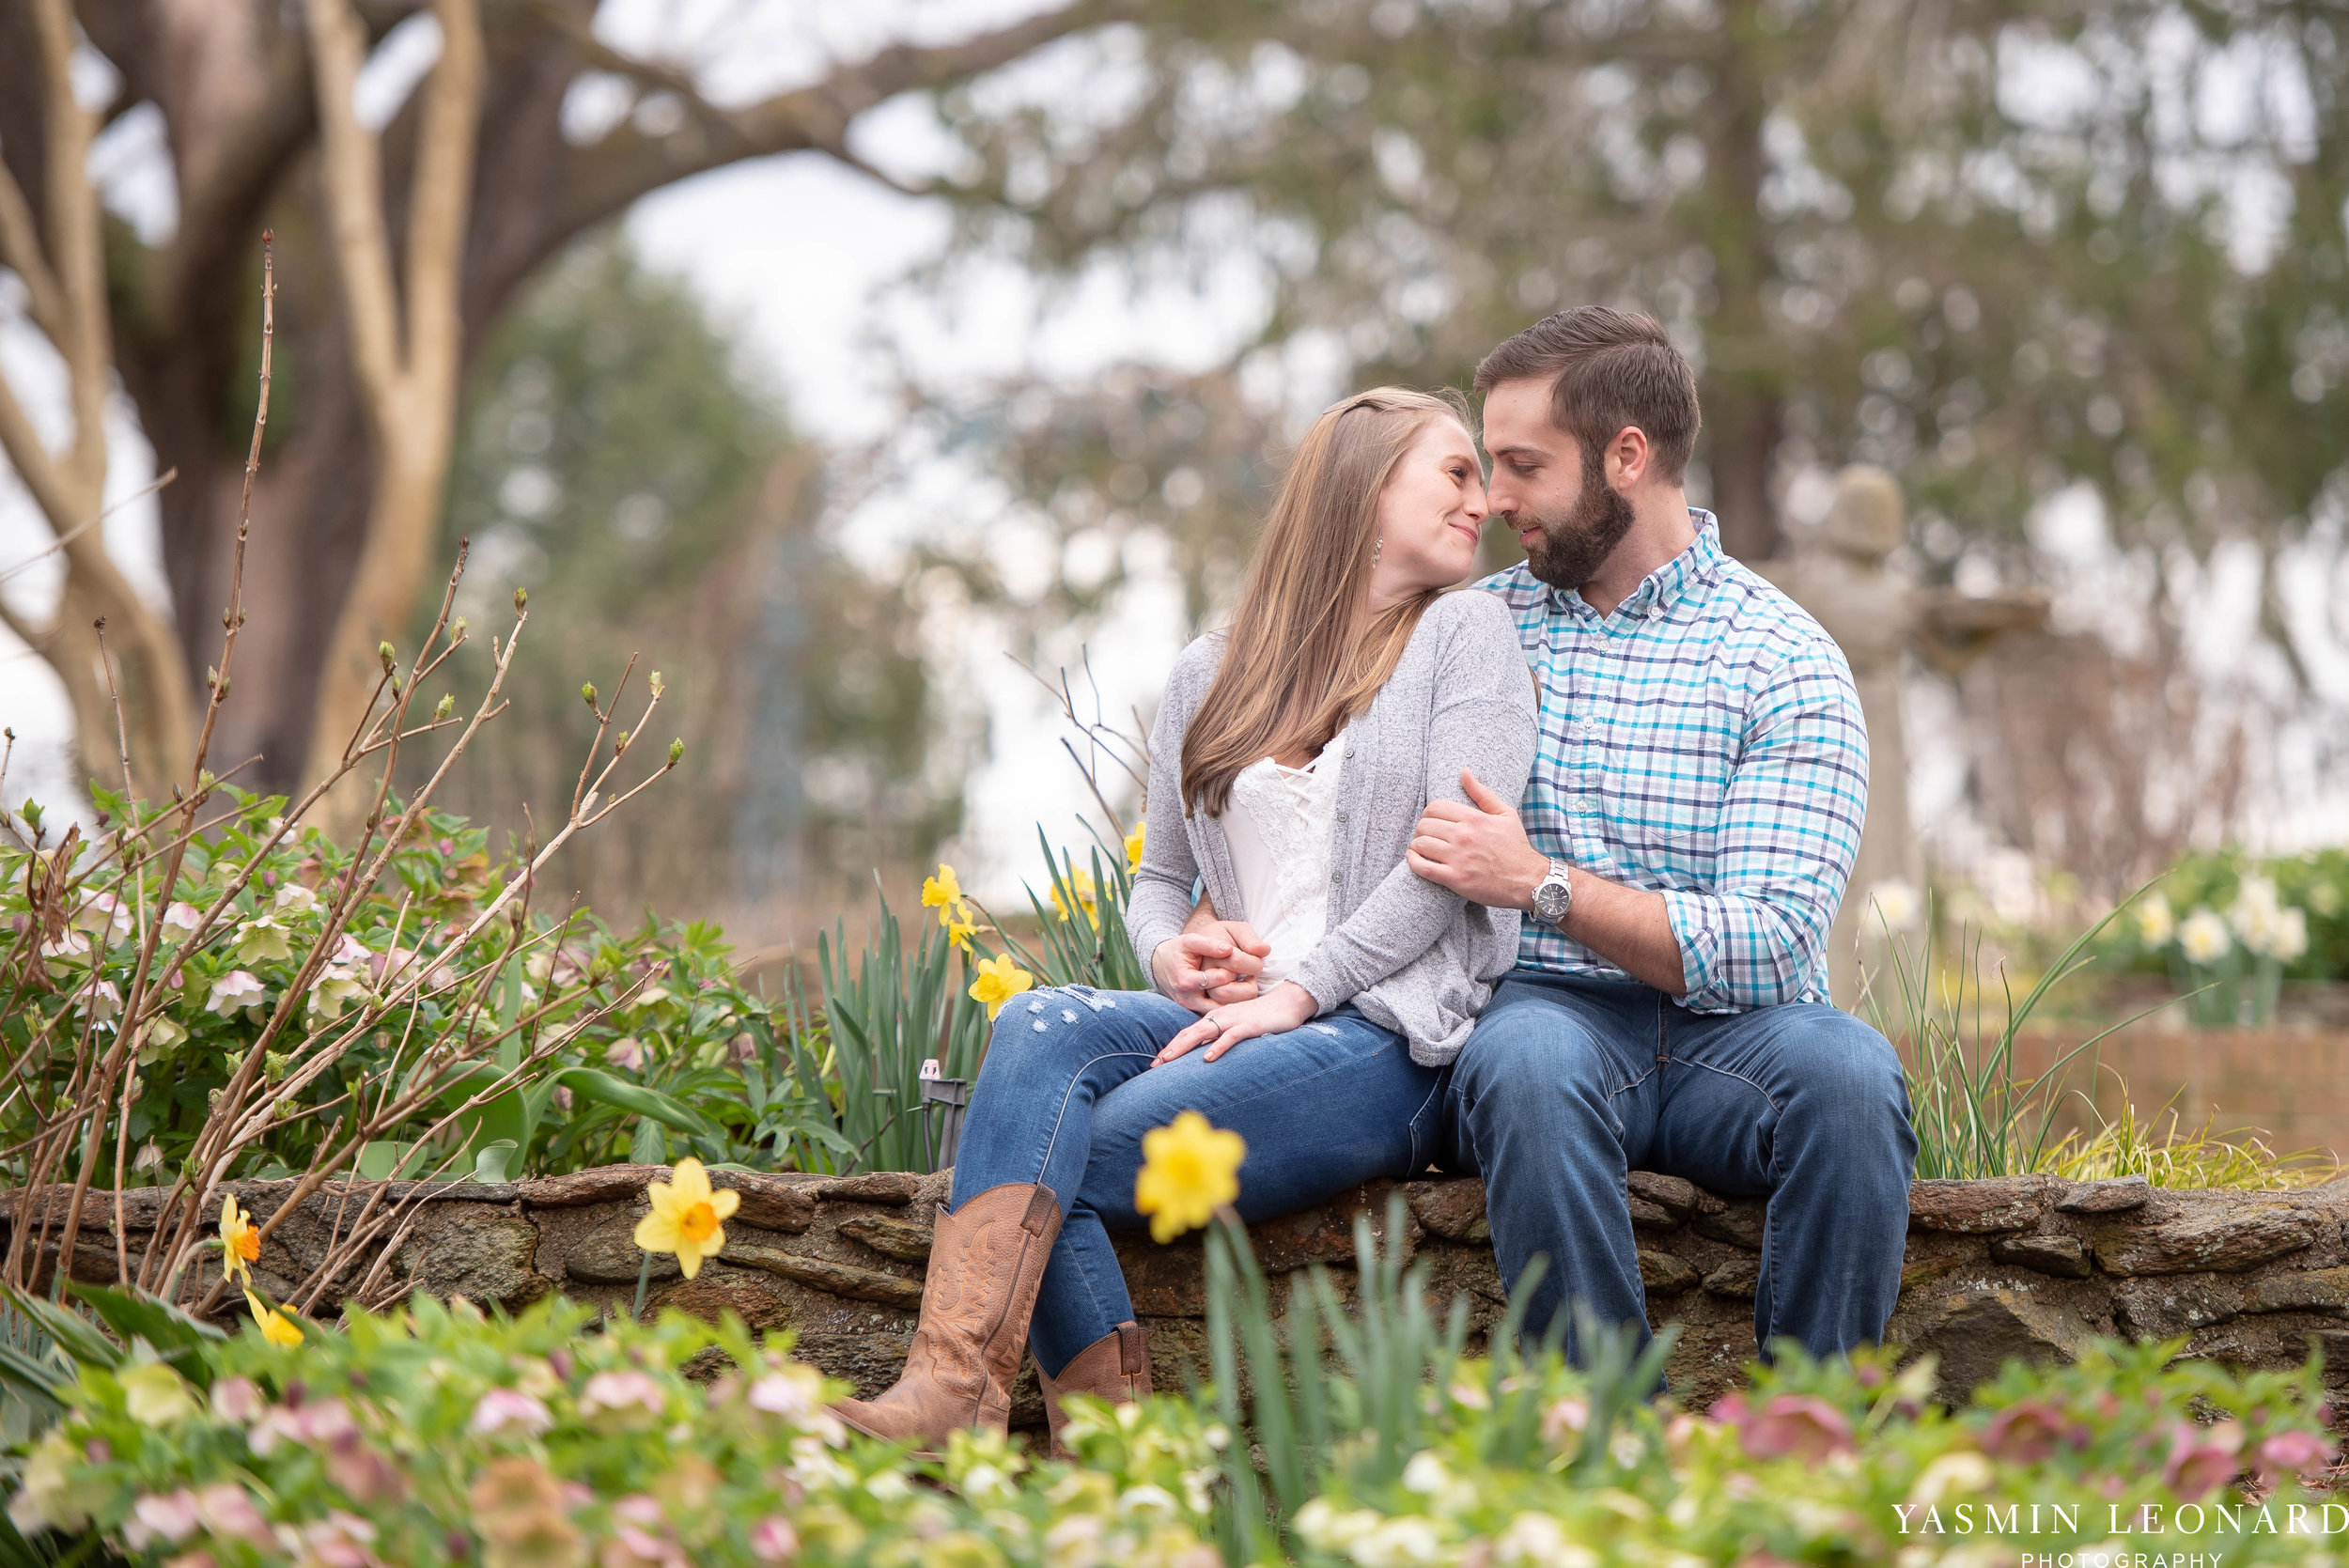 Engagement Session at Tanglewood - Spring Engagement Session - Engagement Session Ideas - Engagement Pictures - What to Wear for Engagement Pictures - Yasmin Leonard Photography-5.jpg